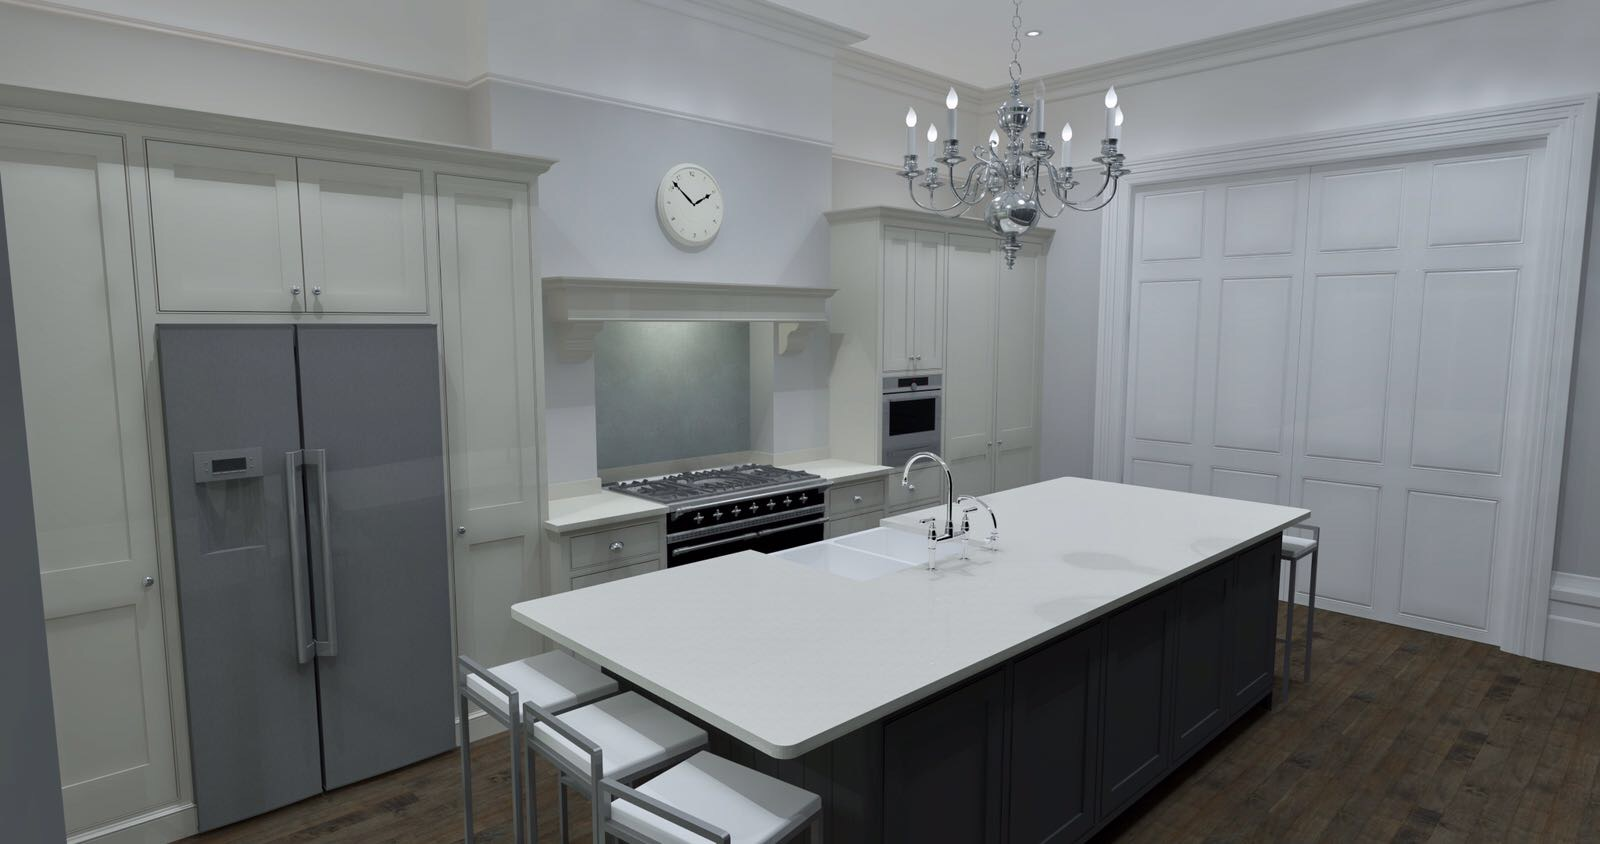 traditional shaker style kitchen angled view with appliances